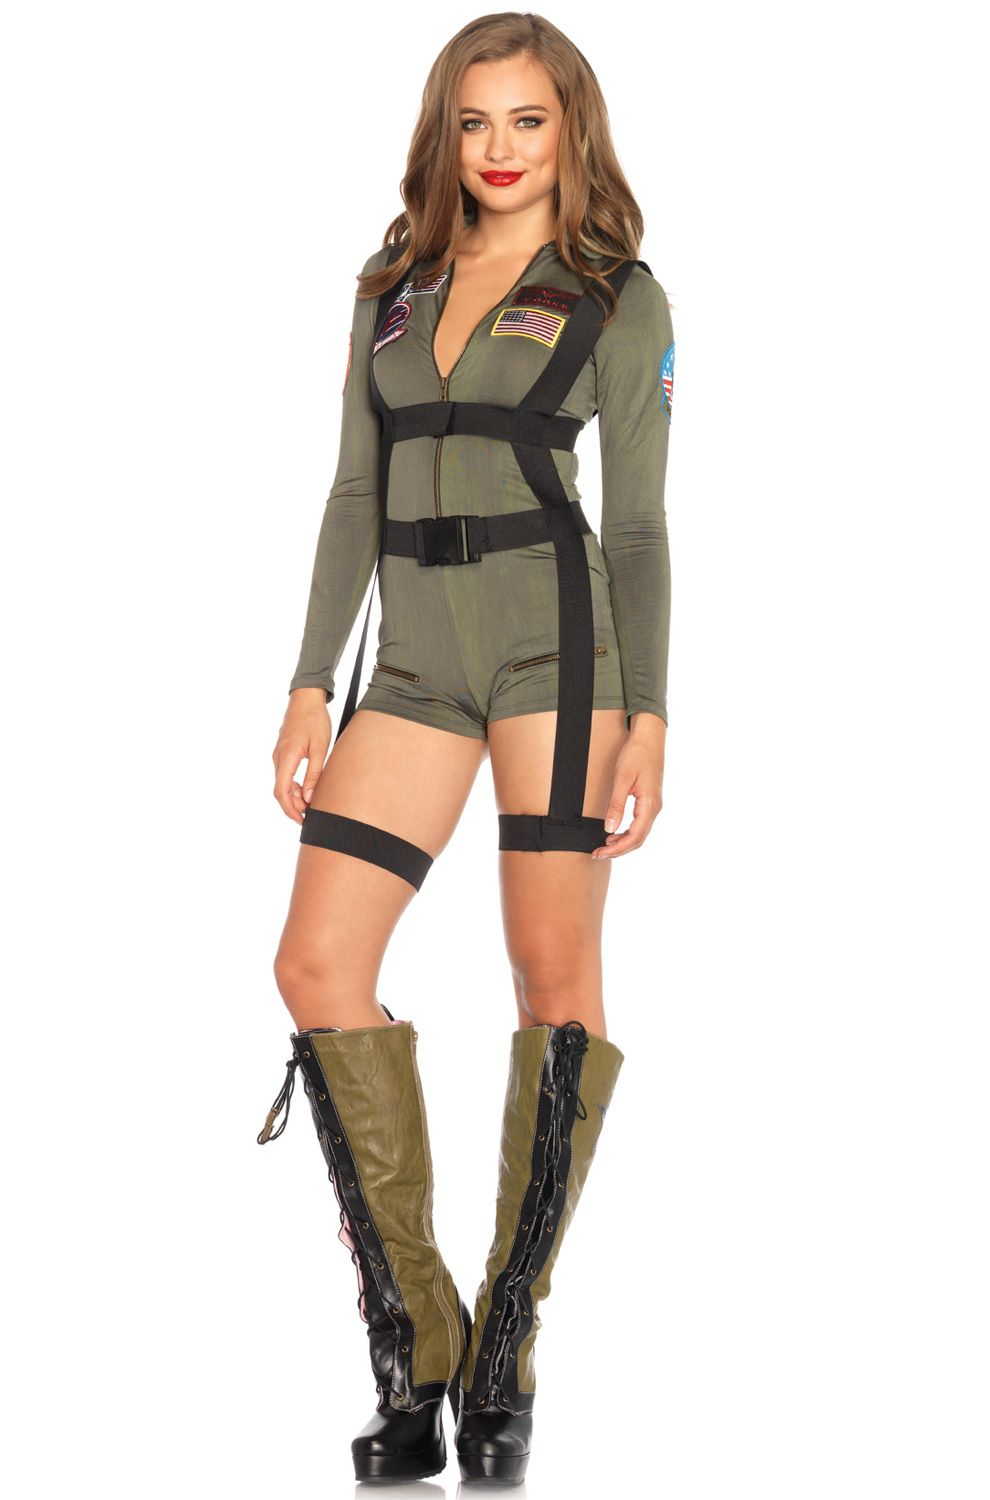 top gun romper adult costume | halloween | pinterest | halloween